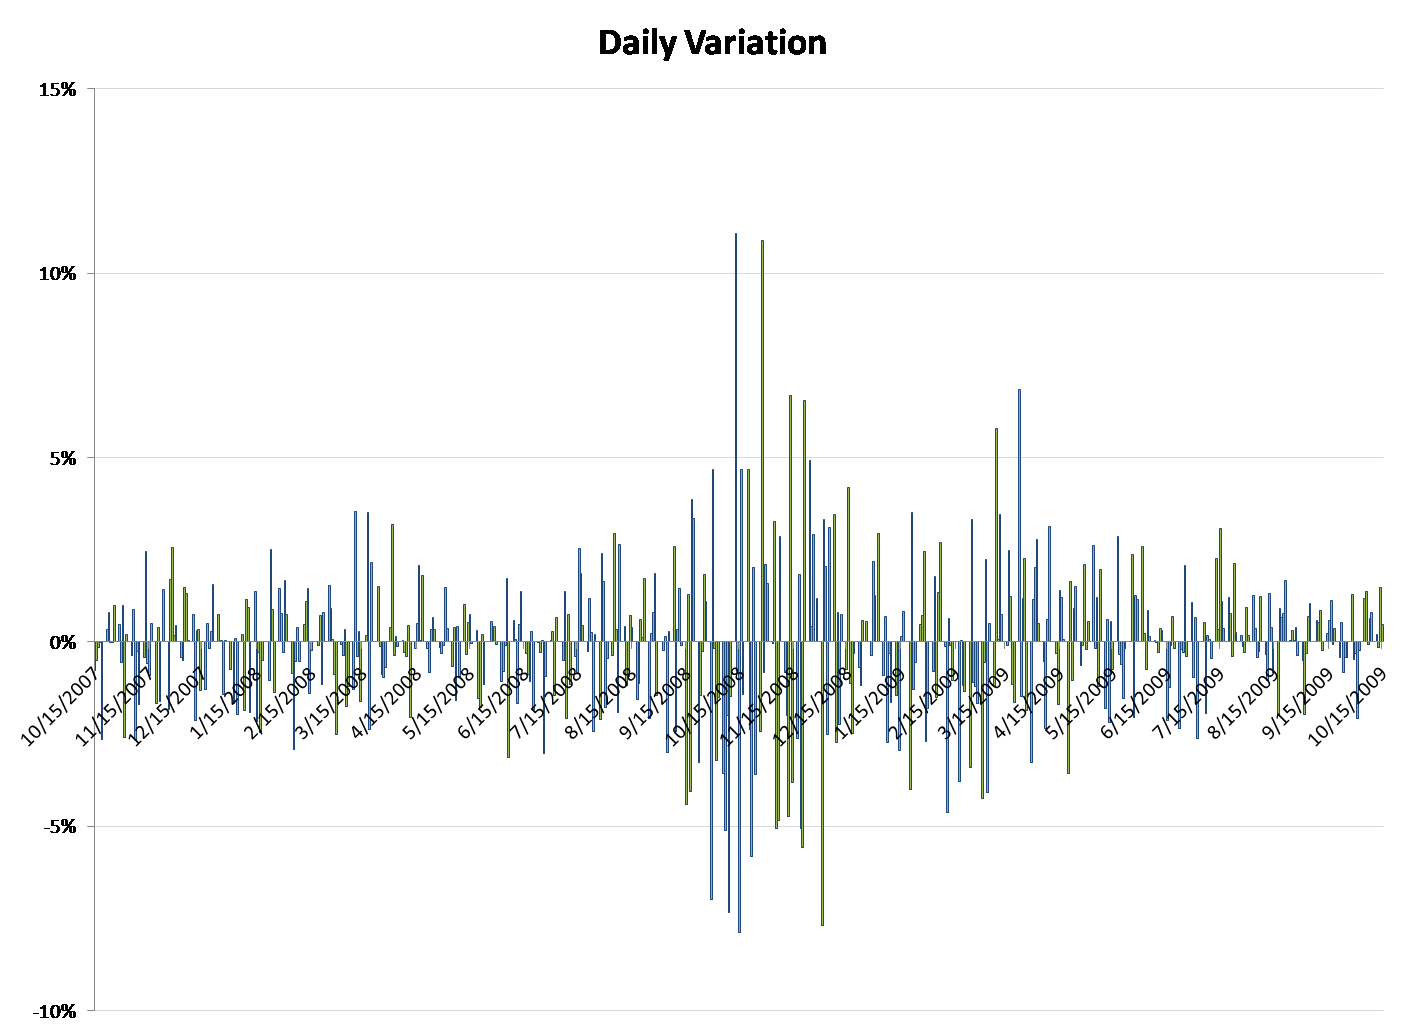 DJIA Recovery Variation